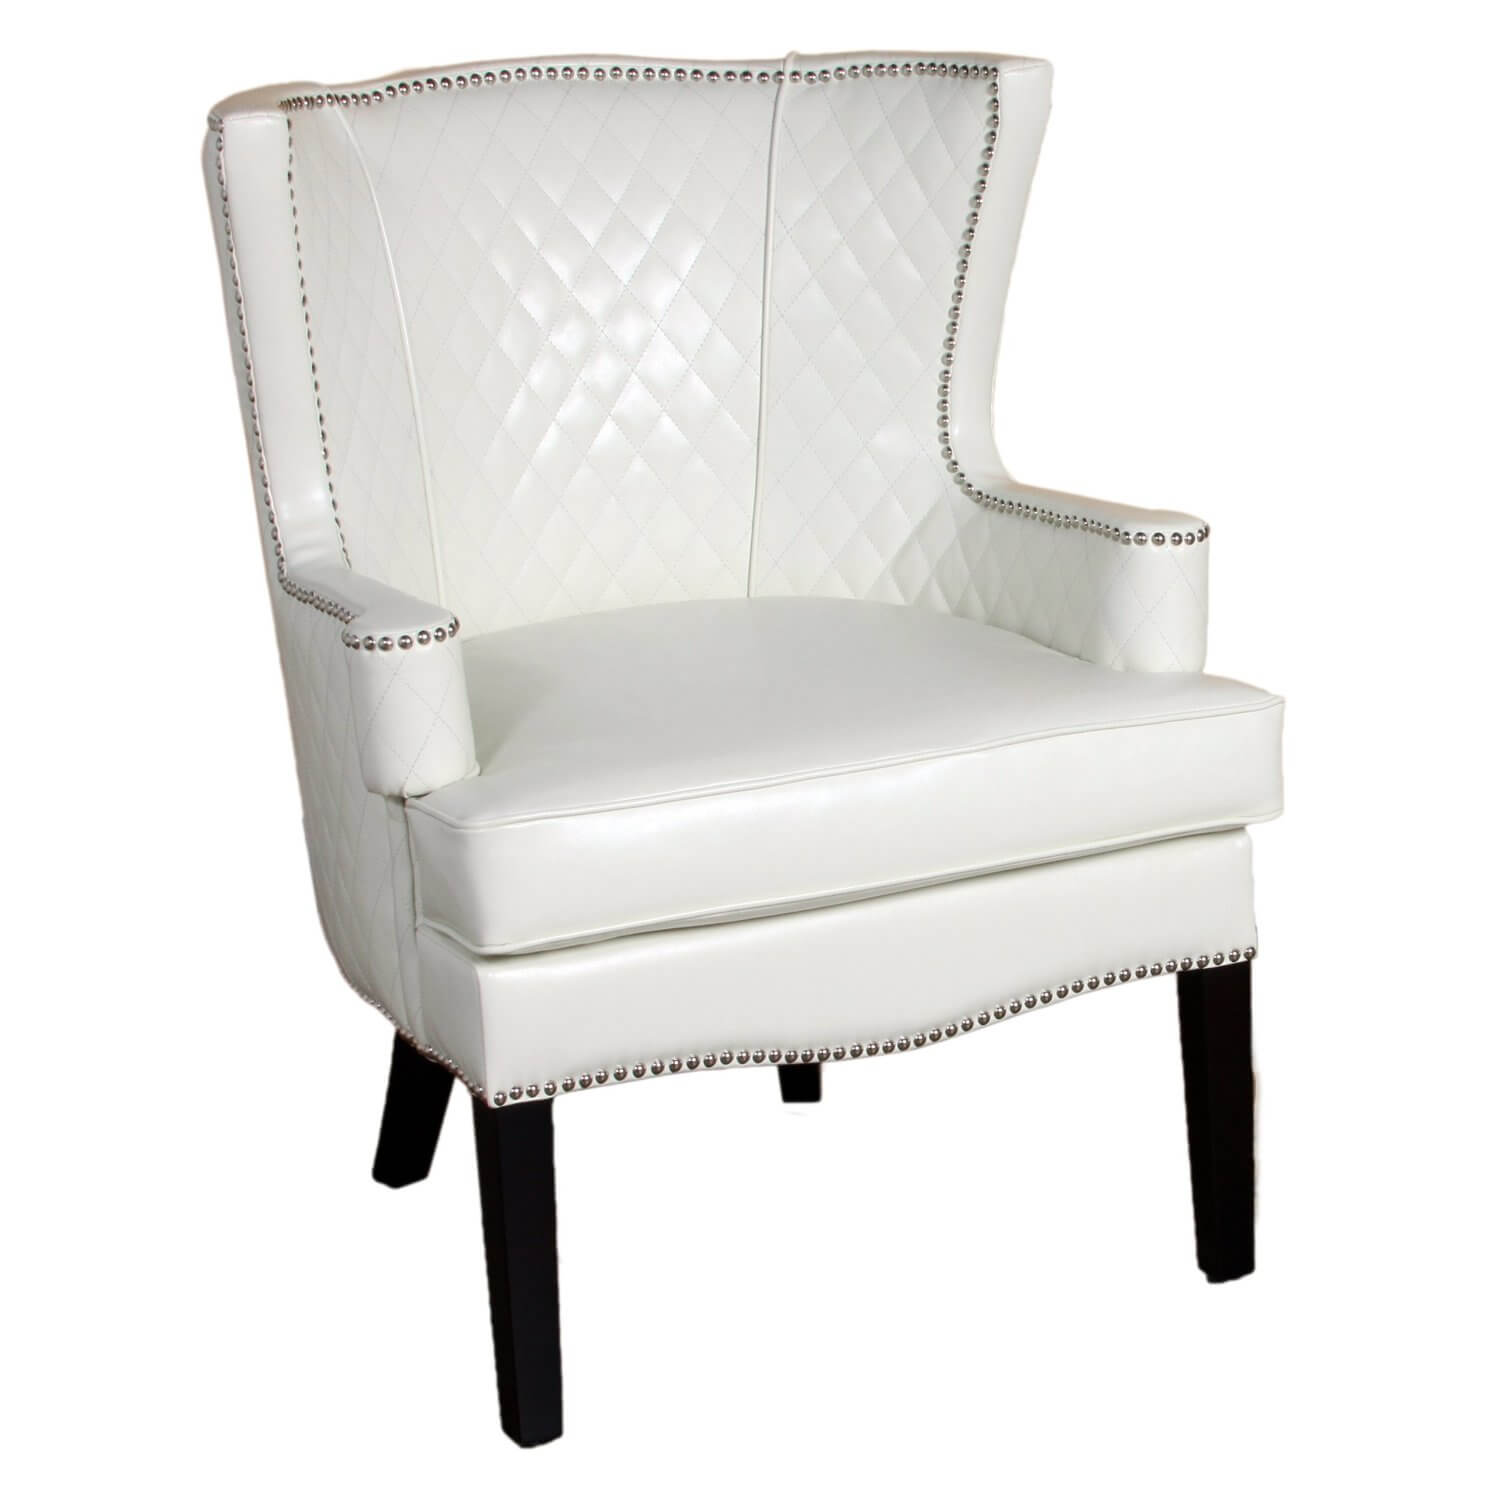 Charmant Another Ivory Toned Chair, This Quilted Leather Seat By BEST Features Wide  Seating, With .